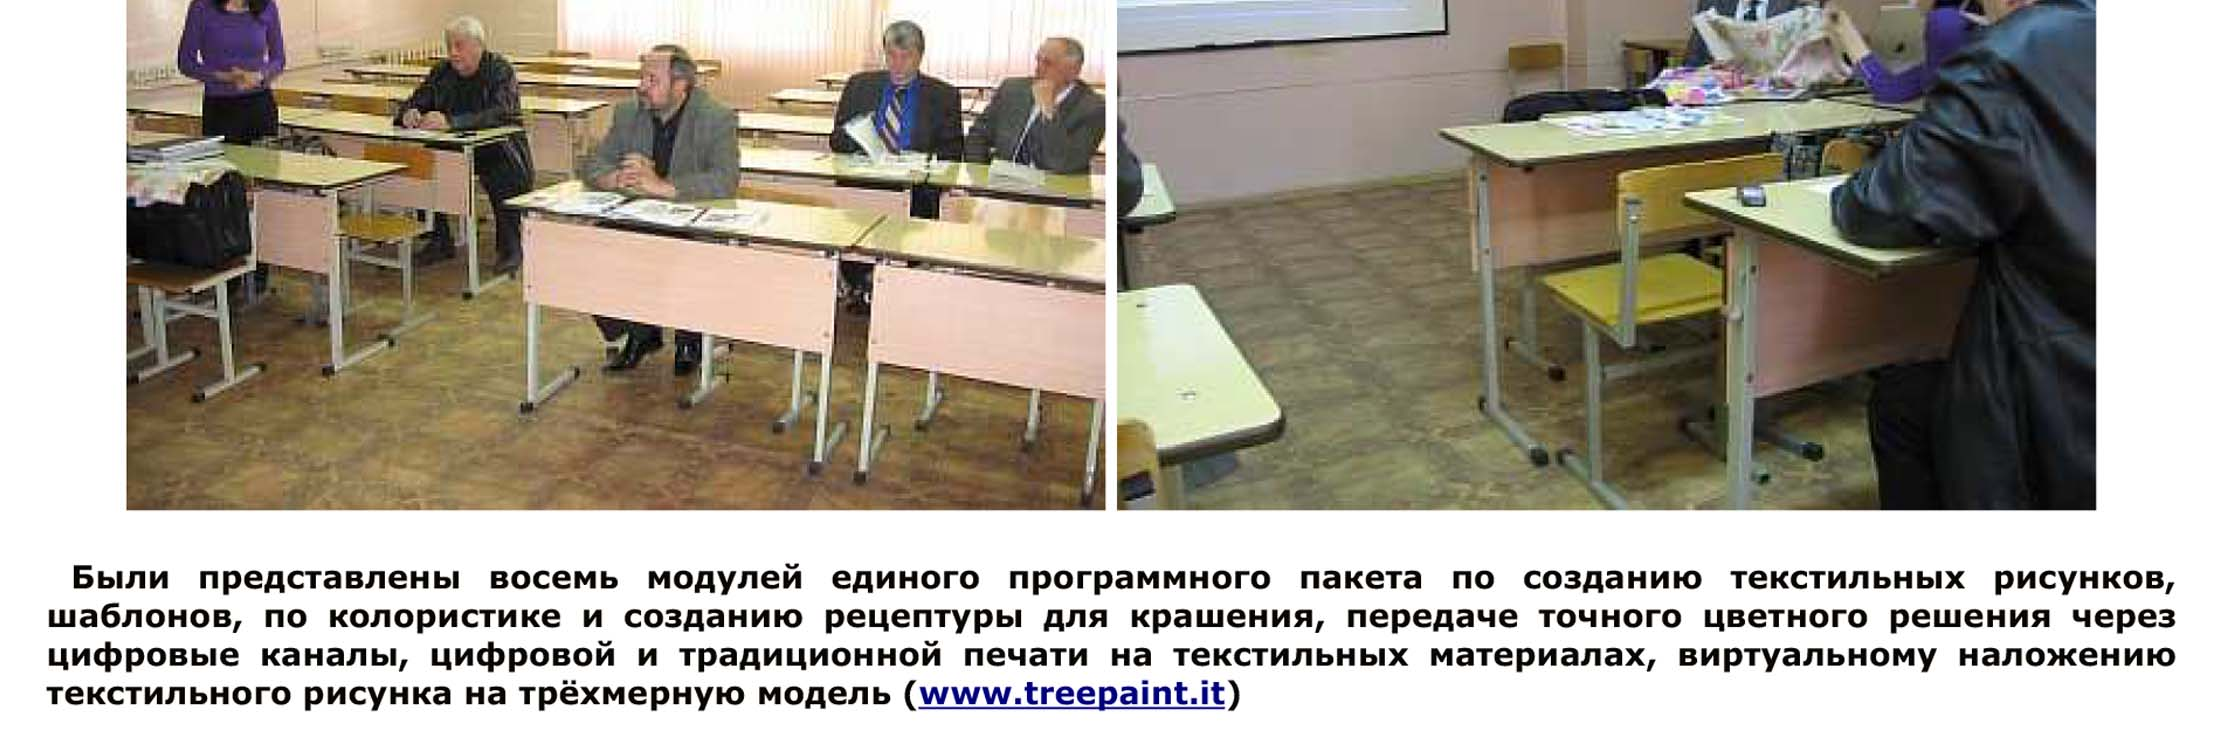 Meeting in Russia